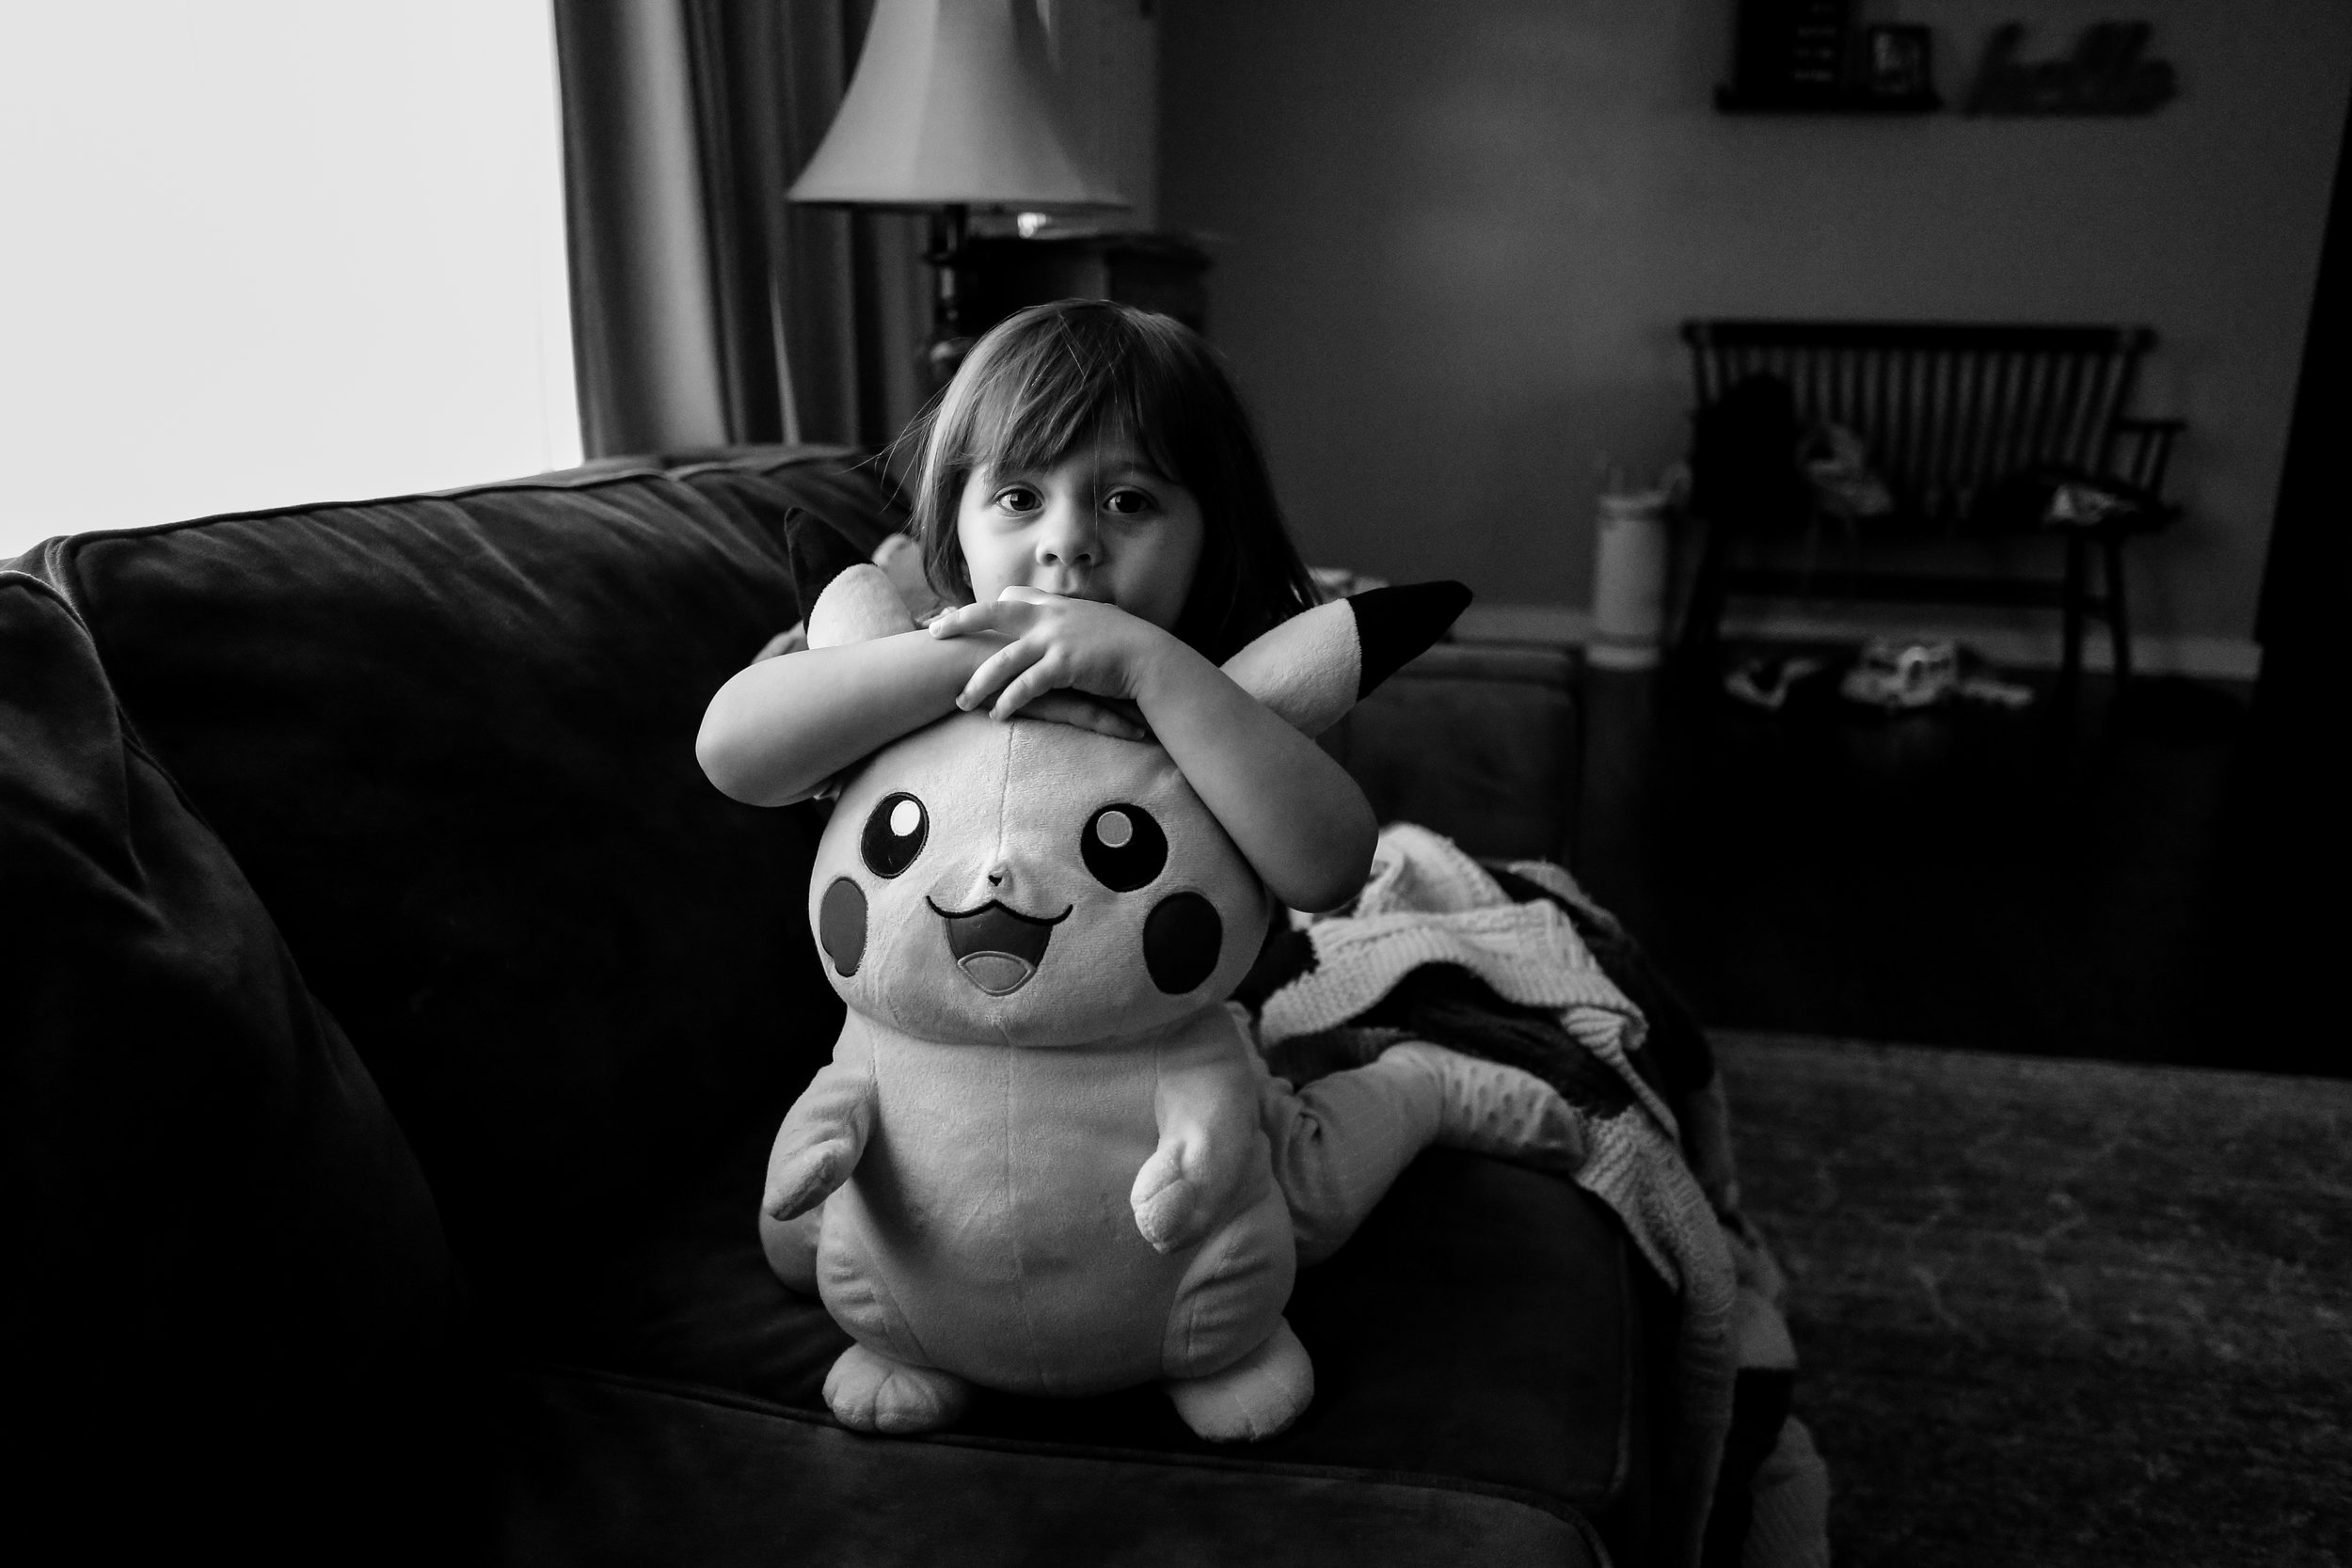 A girl with her favorite Pokemon toy during an at home family photography session in Macungie, PA.